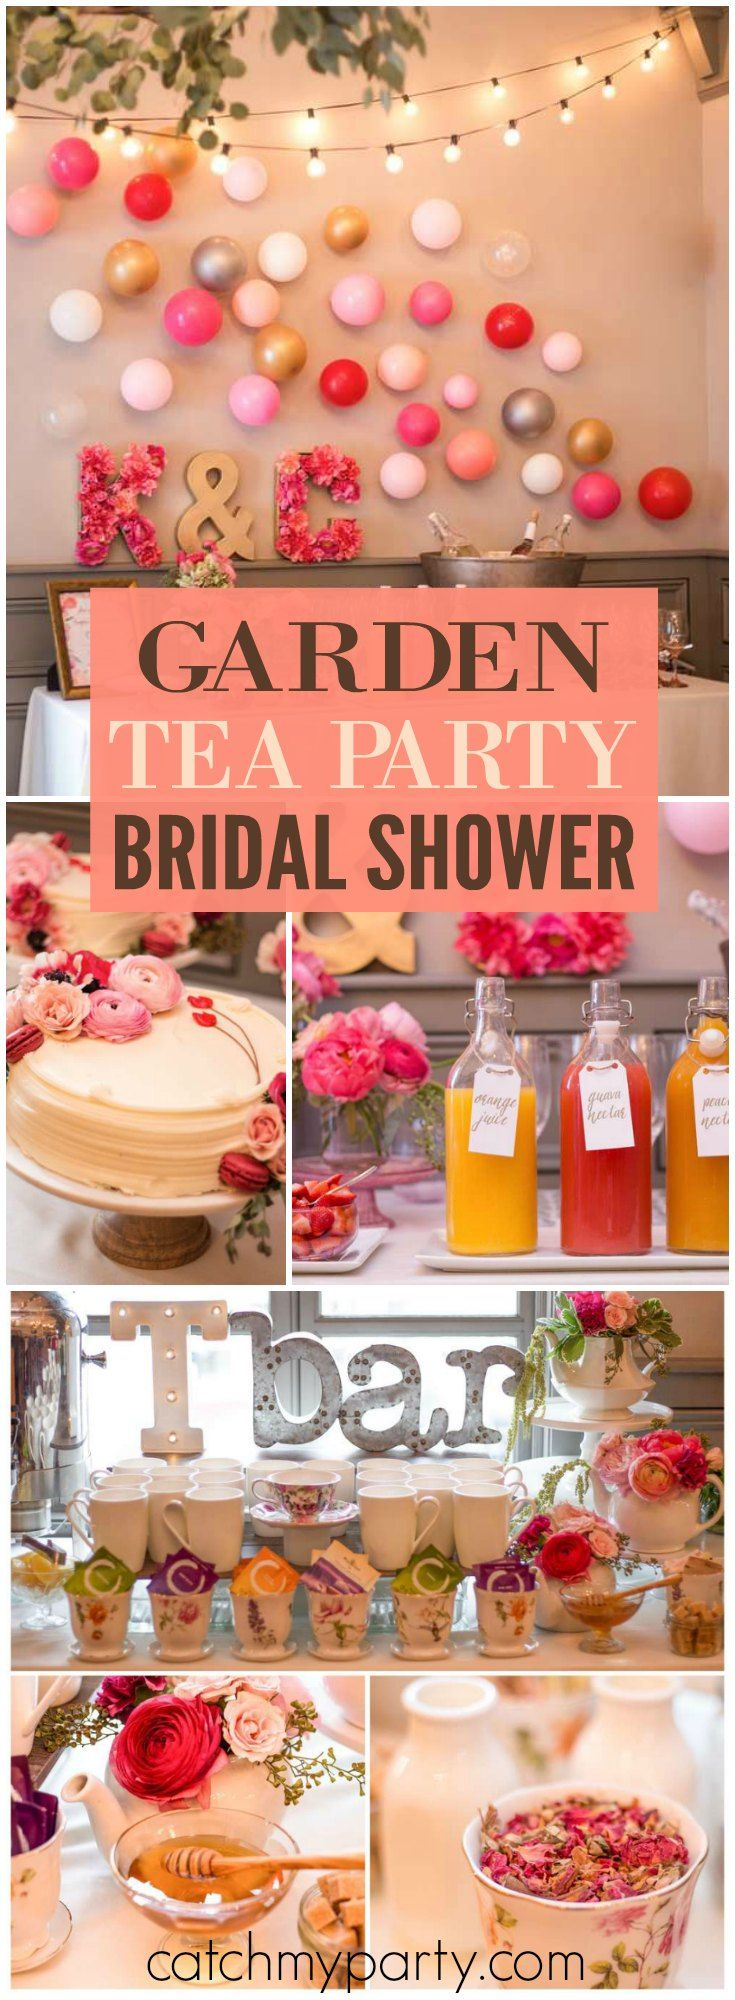 Garden Party Ideas Pinterest garden party ideas Garden Tea Party Bridalwedding Shower Kimberly S Garden Tea Party